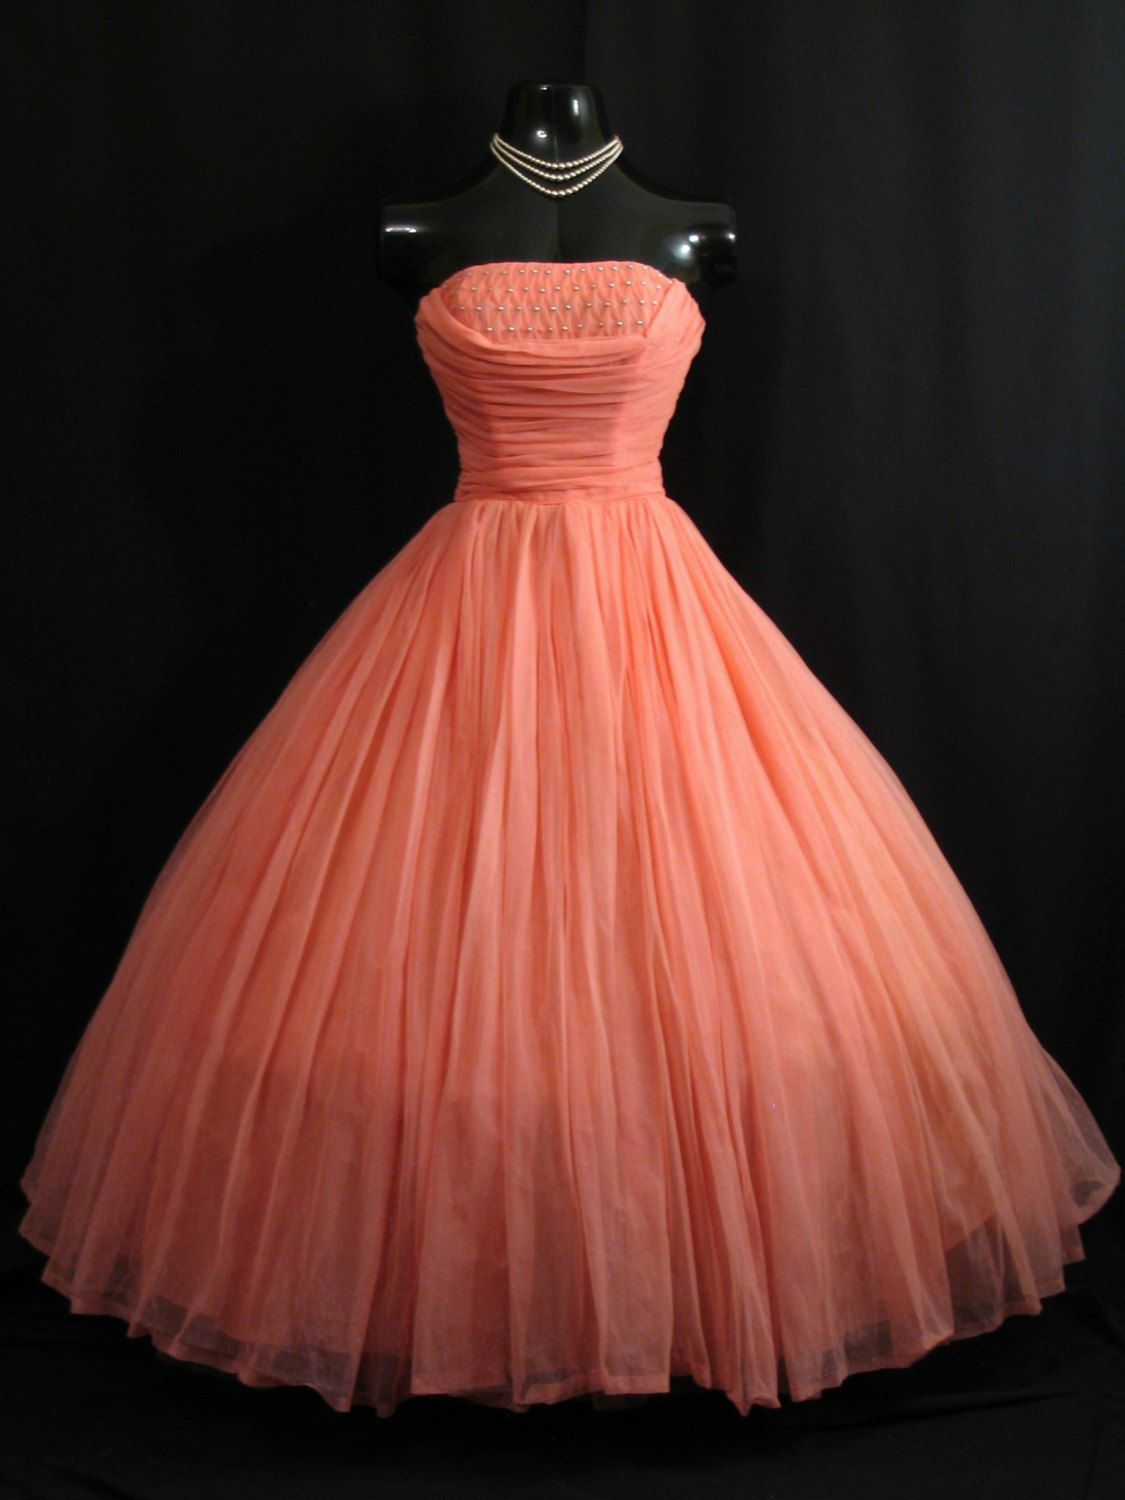 Vintage s s coral salmon peach pink beaded ruched chiffon